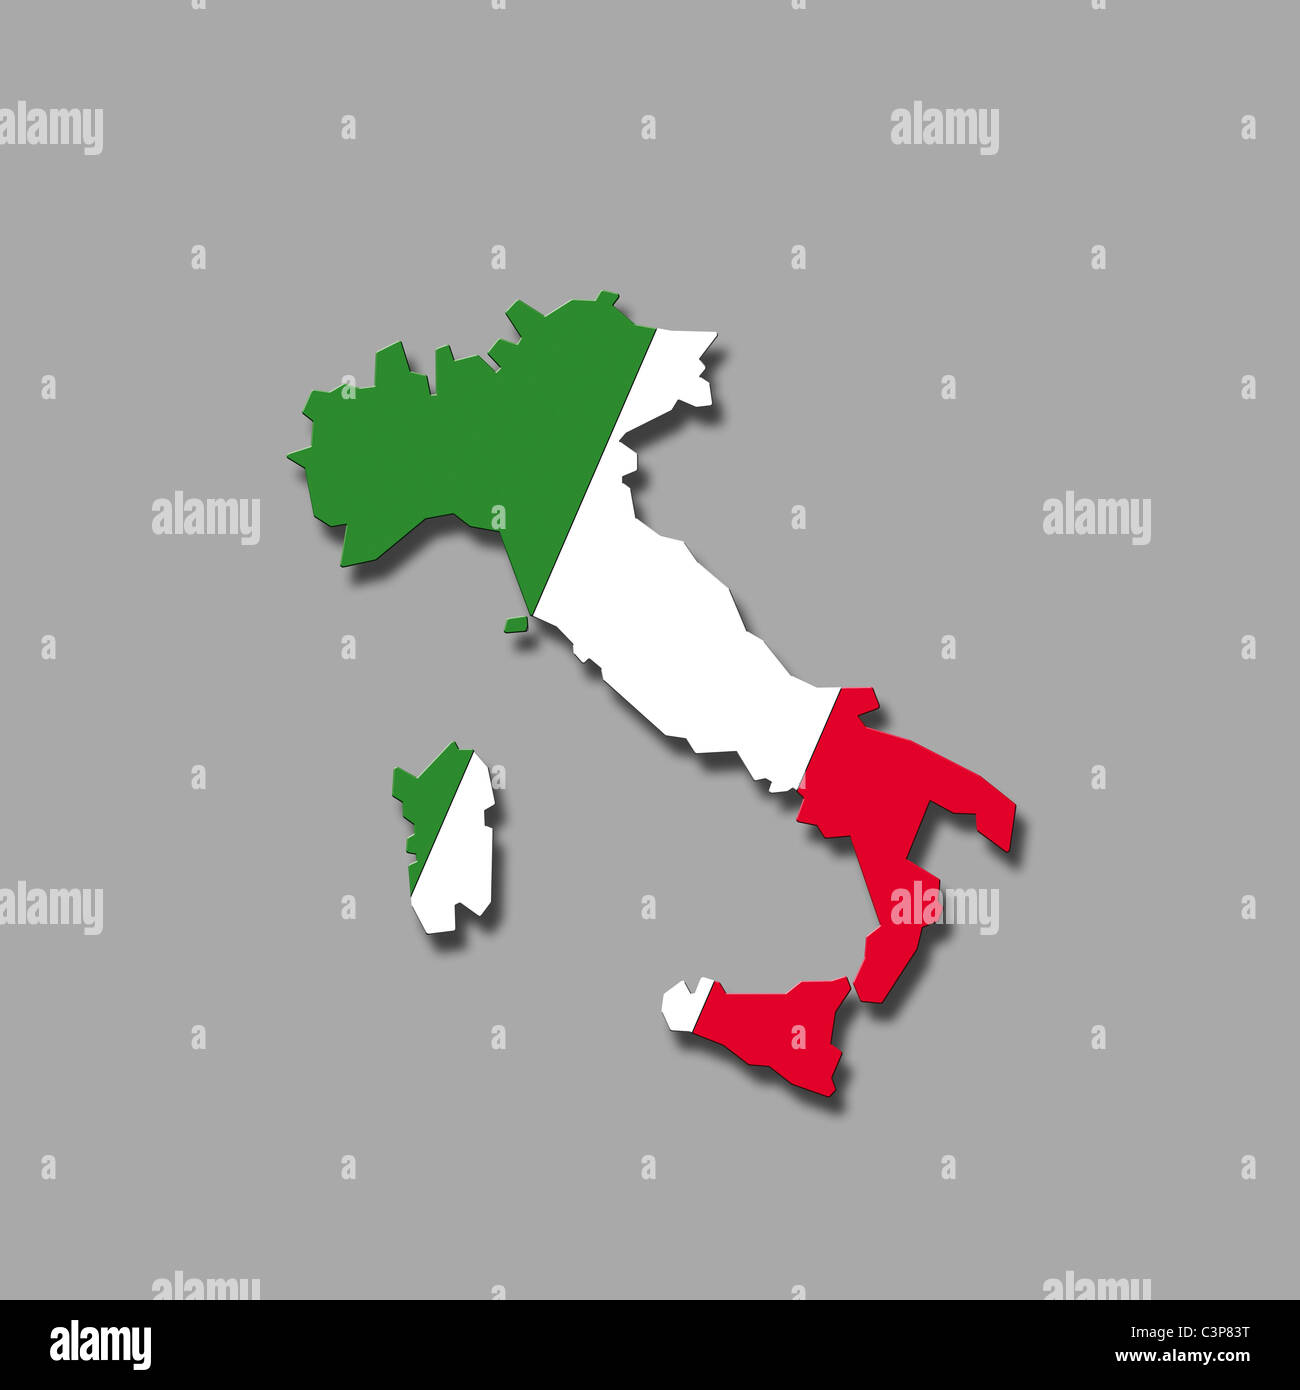 Contour of Italy against grey background, digital composite - Stock Image